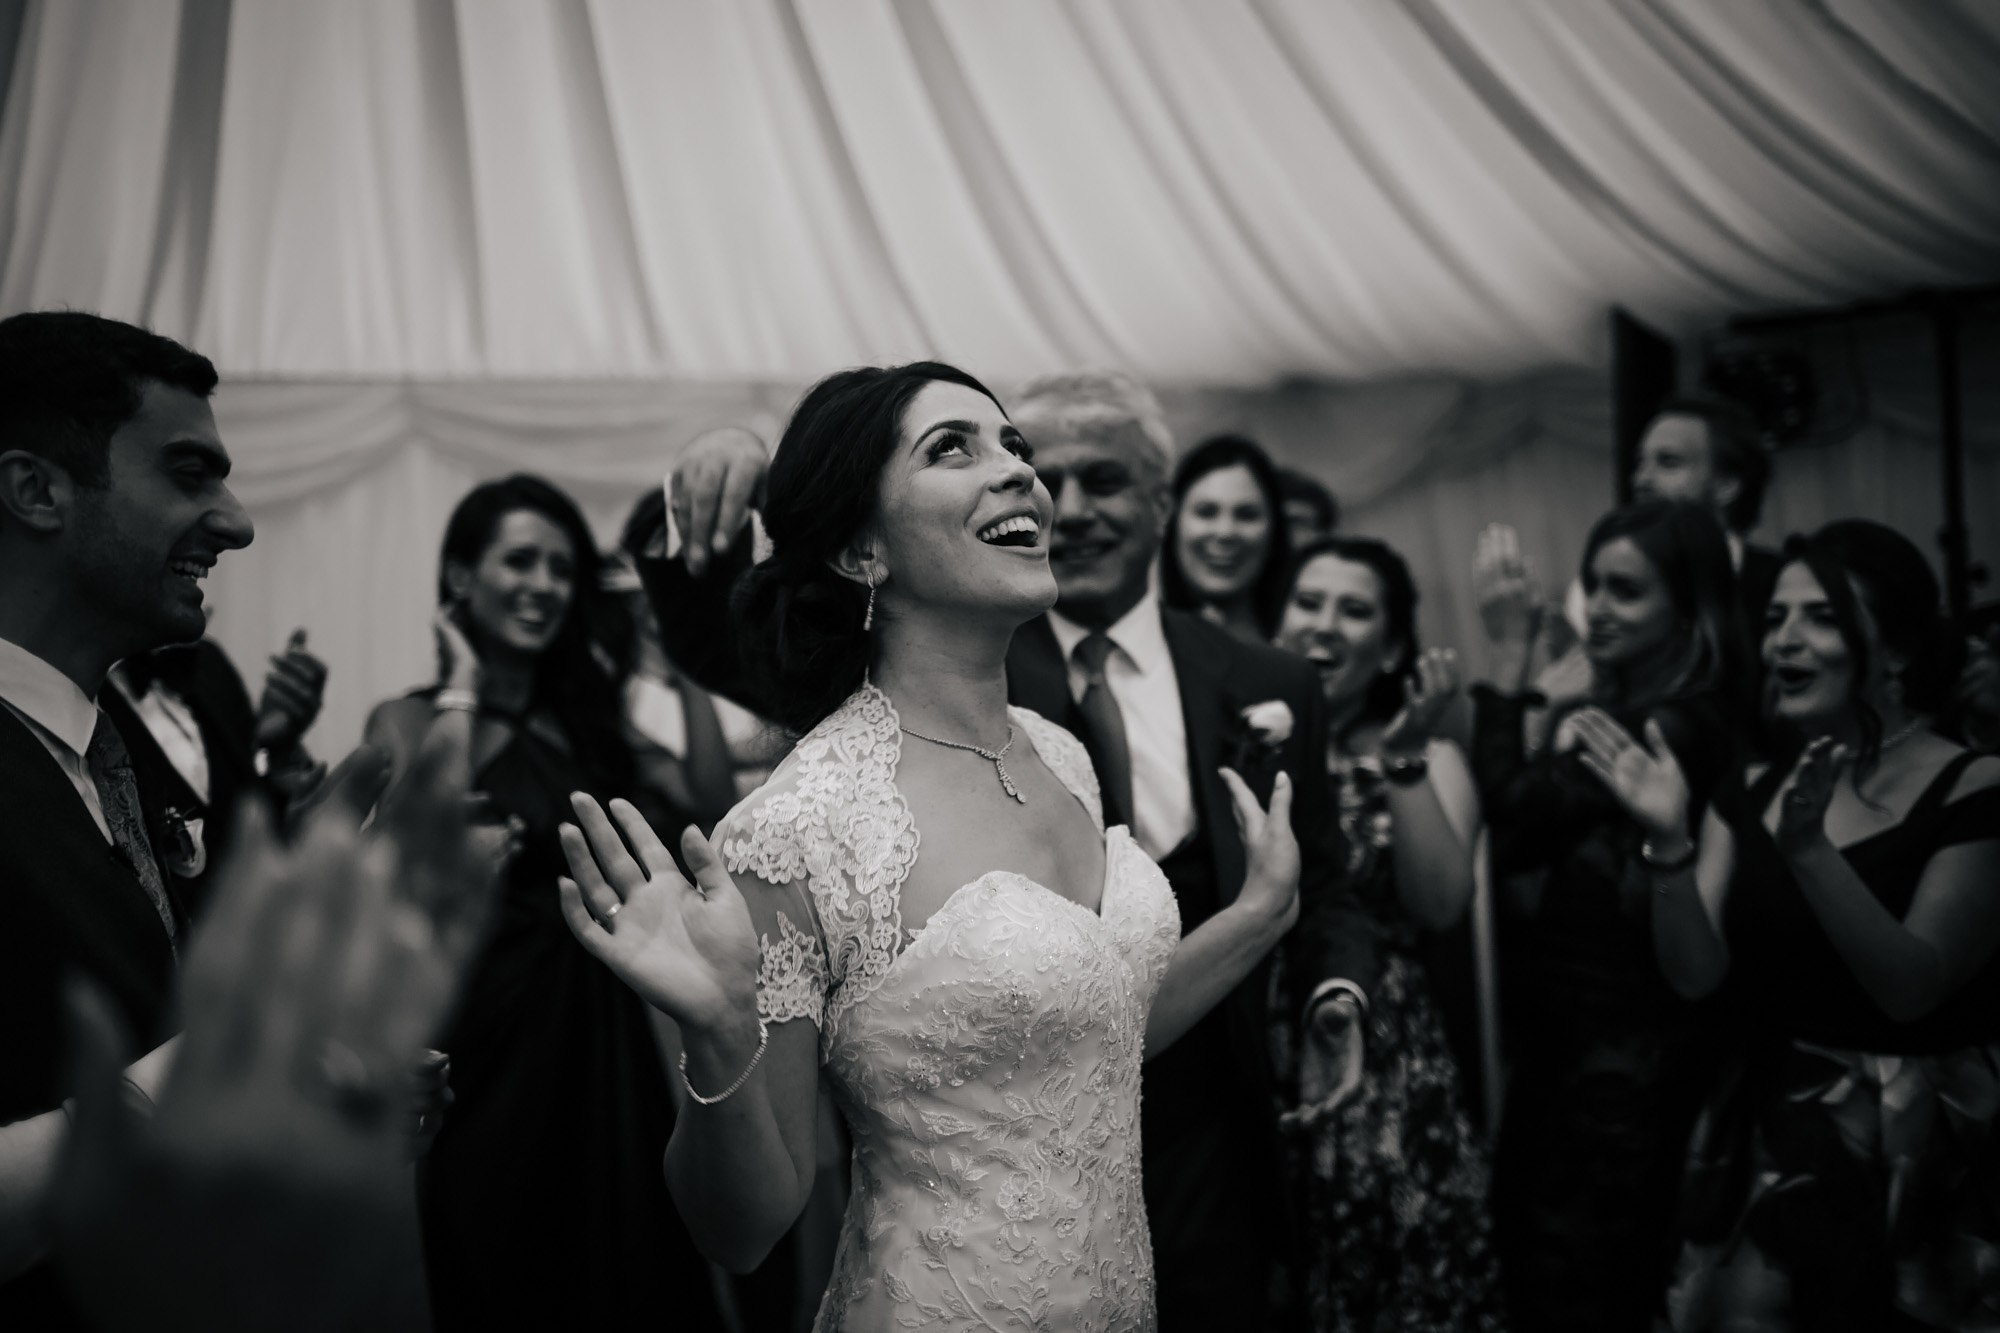 Bride dancing and laughing at a wedding